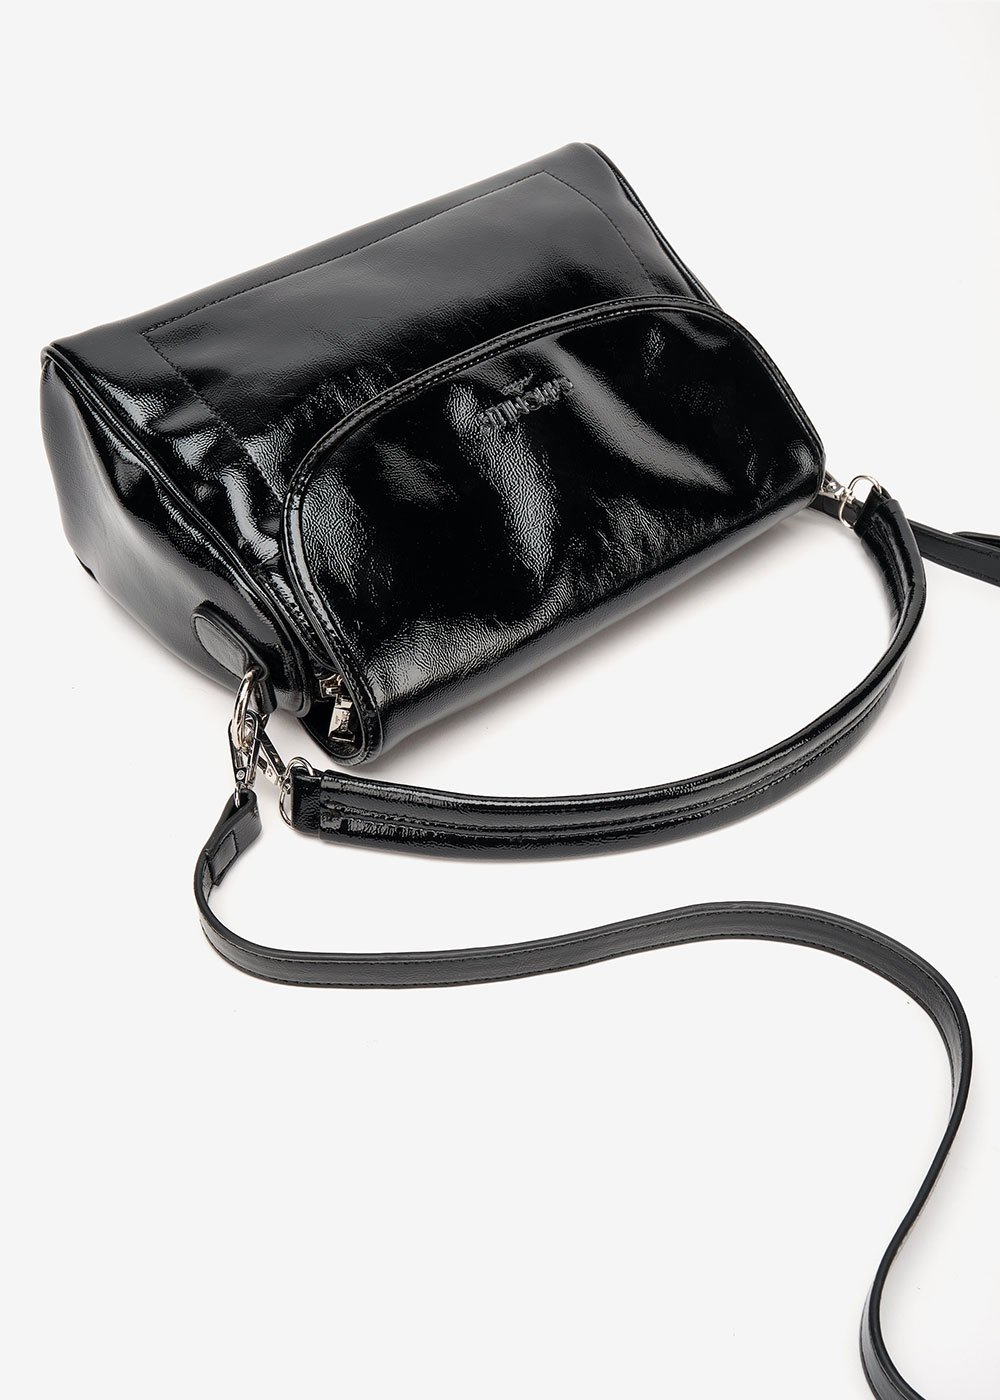 Borsa Brays in vernice - Black - Donna